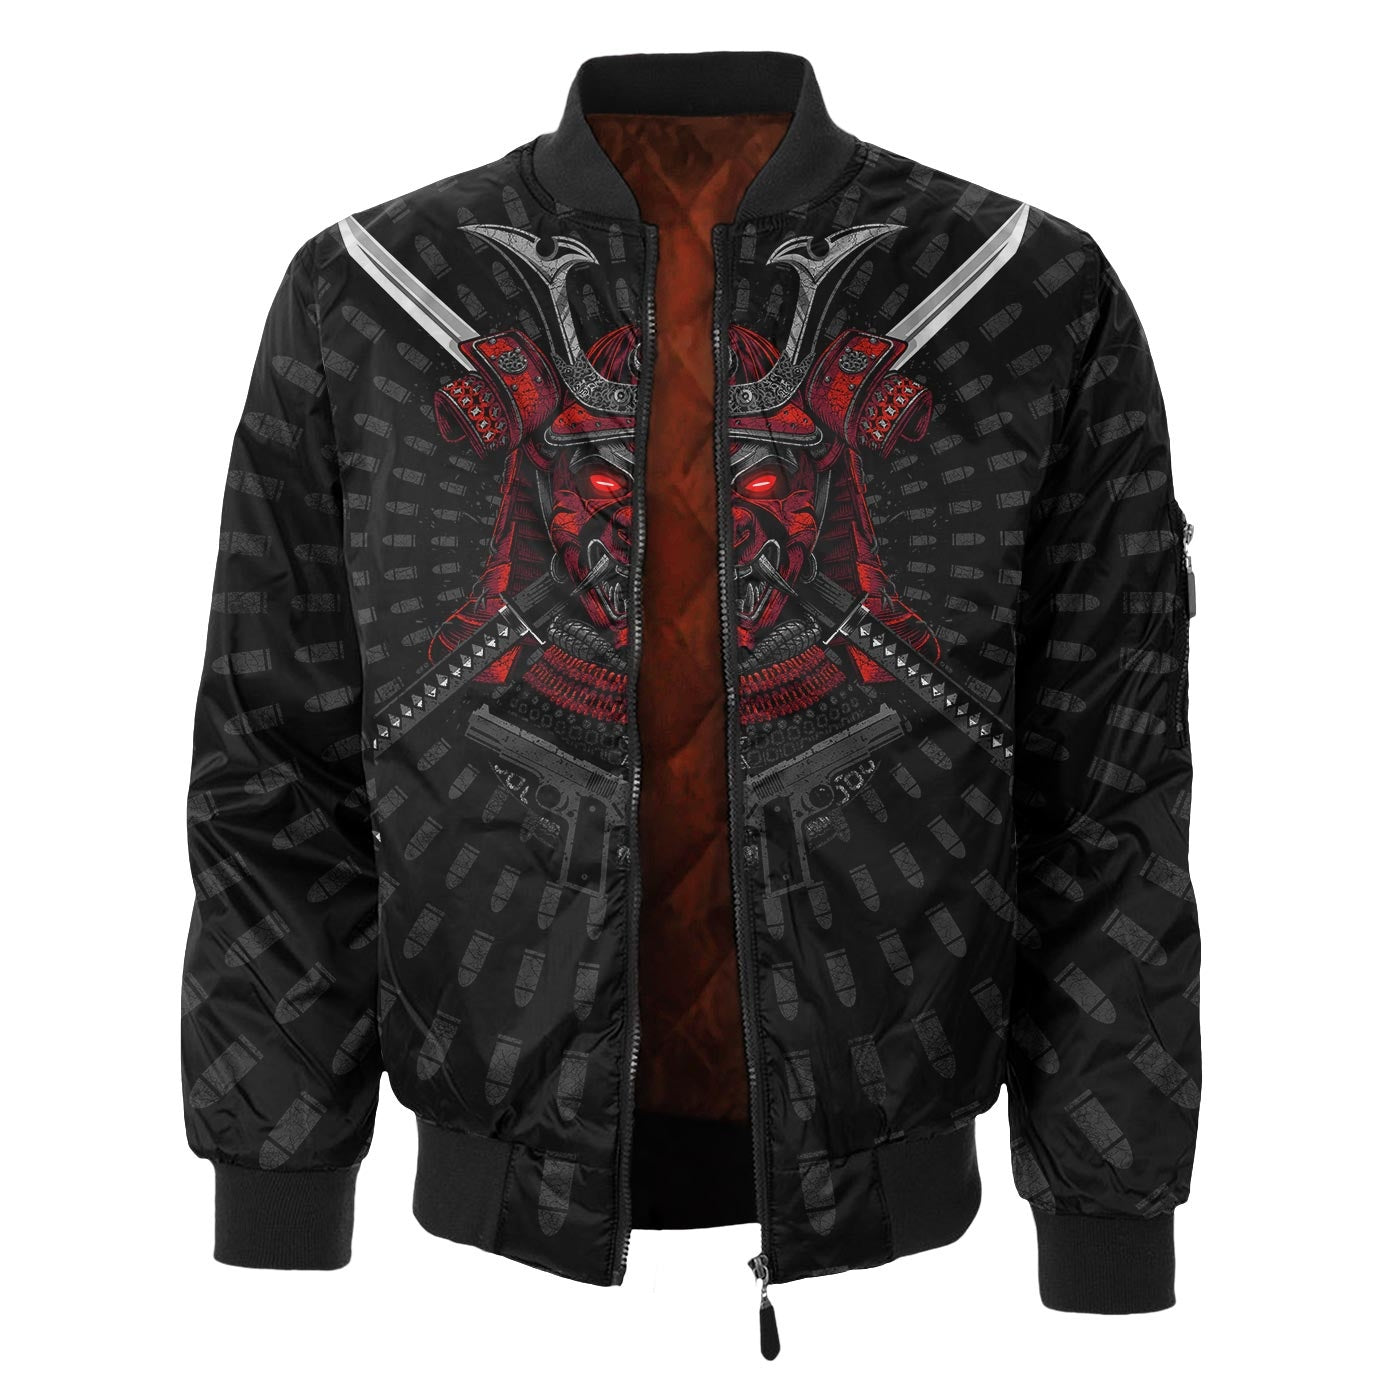 New Samurai Bomber Jacket